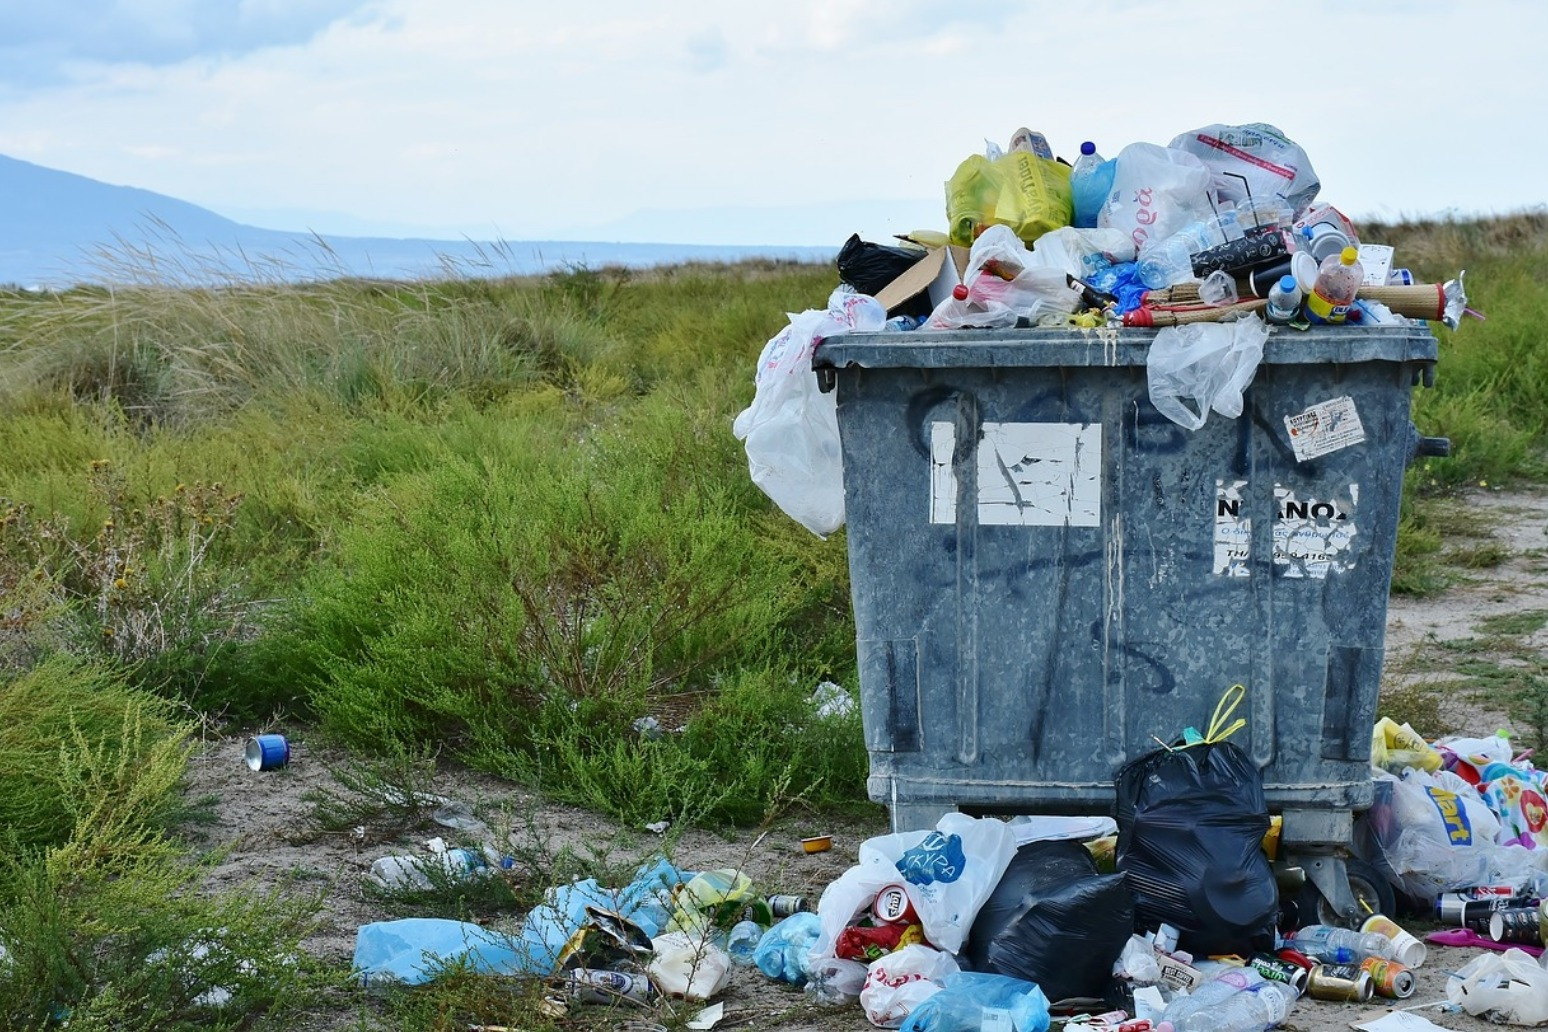 Fines for littering to be almost doubled